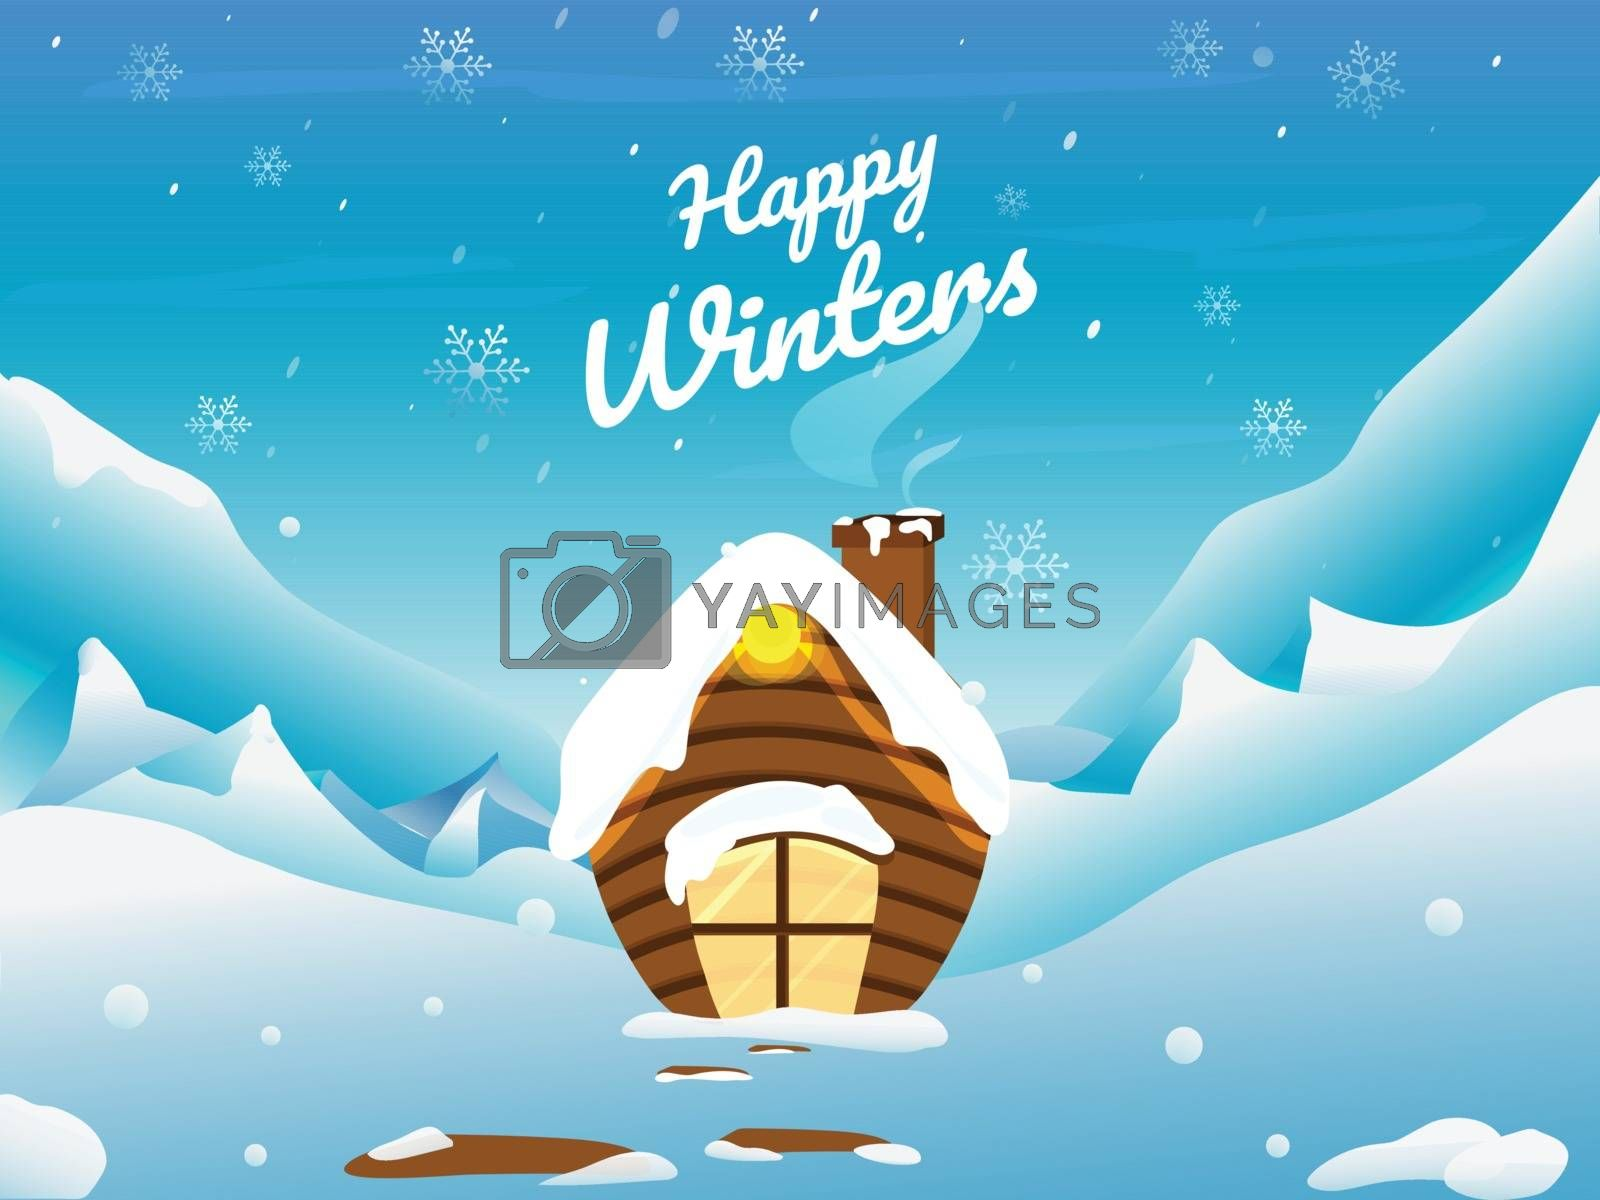 Happy Winter greeting card design with snow capped home winter landscape background.